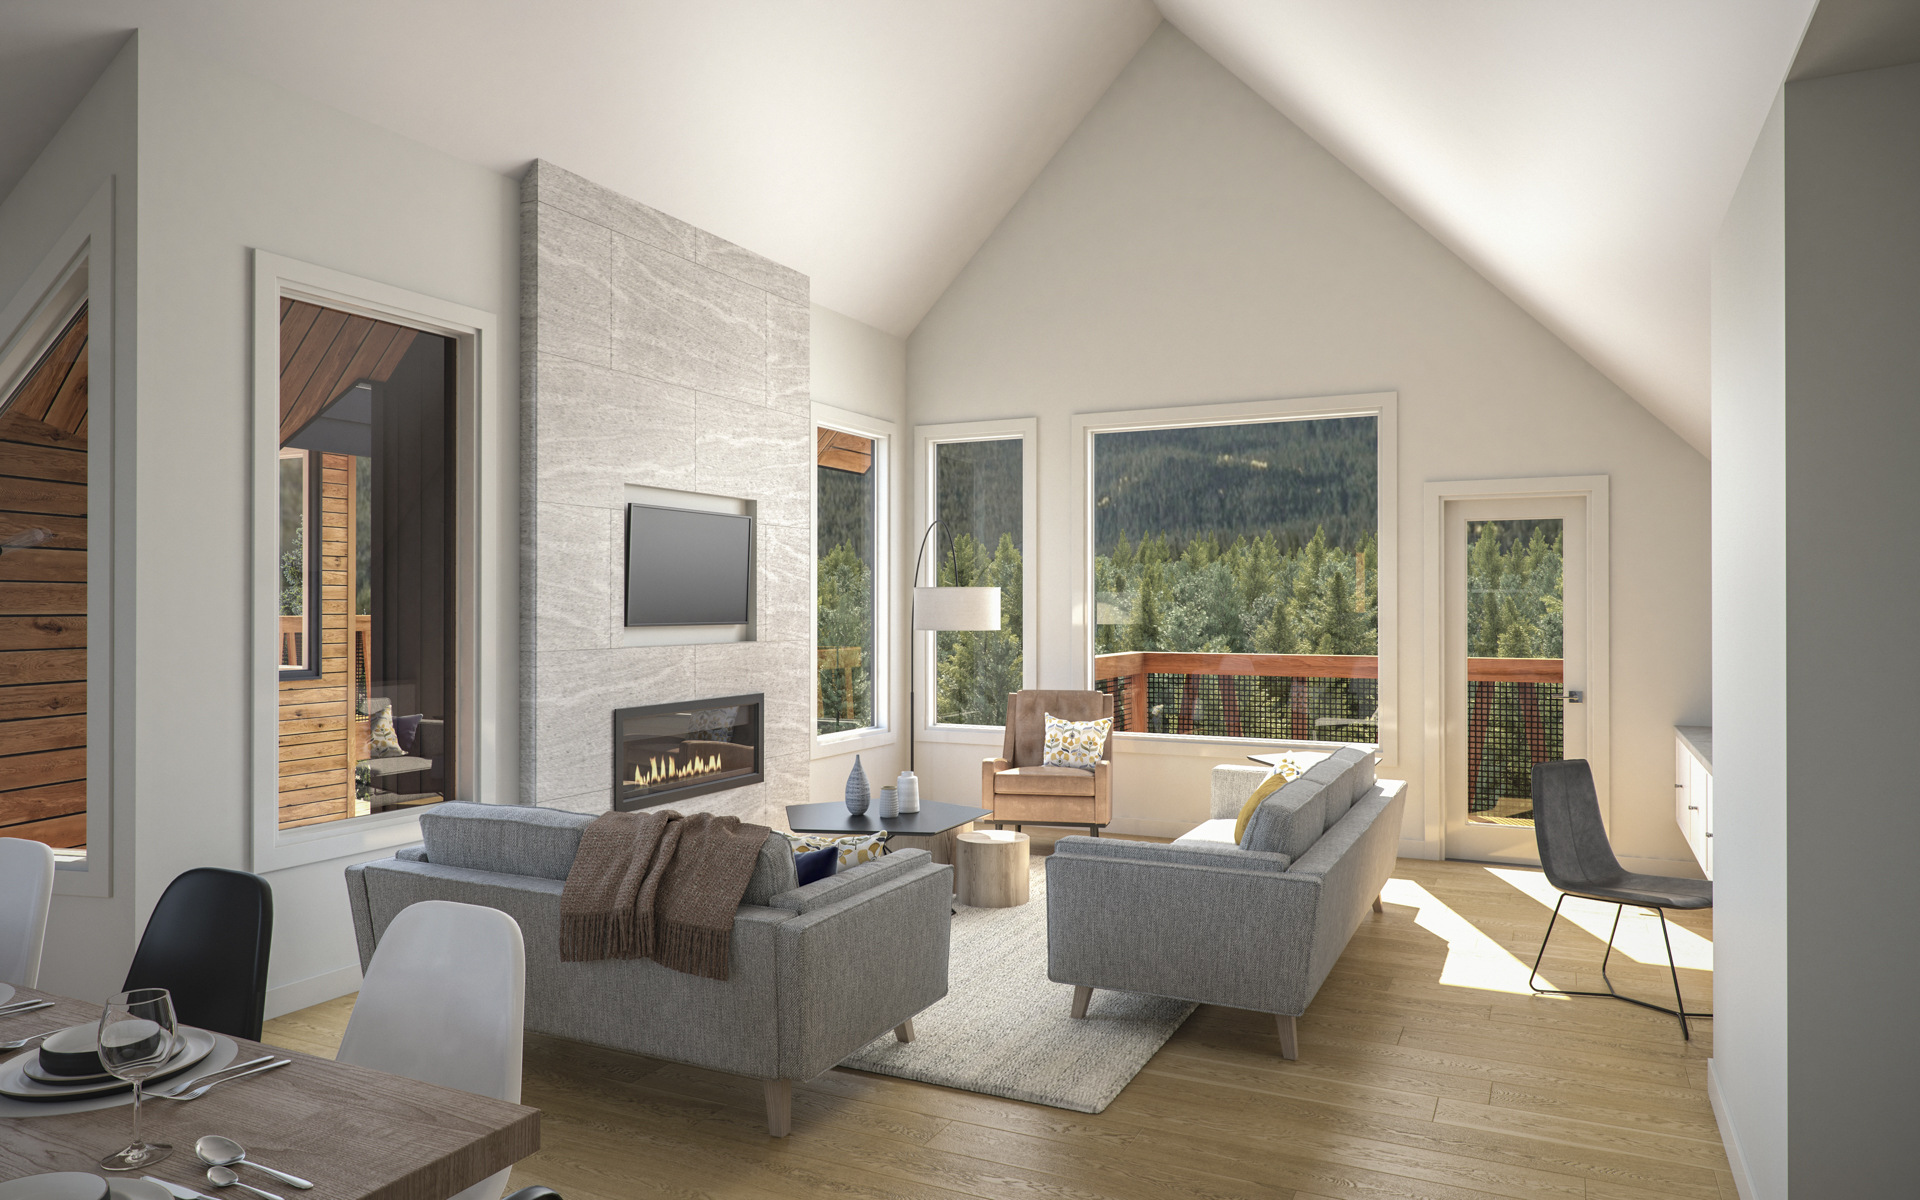 • Spacious floor plans feature open living room/ kitchen/dining room combinations and large windows for maximum light and energy flow. • Quality flooring includes oversized tiles, carpeting with 7 lb. underlay, and premium engineered hardwood trimmed with 4-inch baseboards. • Choose from 3 professionally designed colour palettes – Scandi, Summit or Revere.